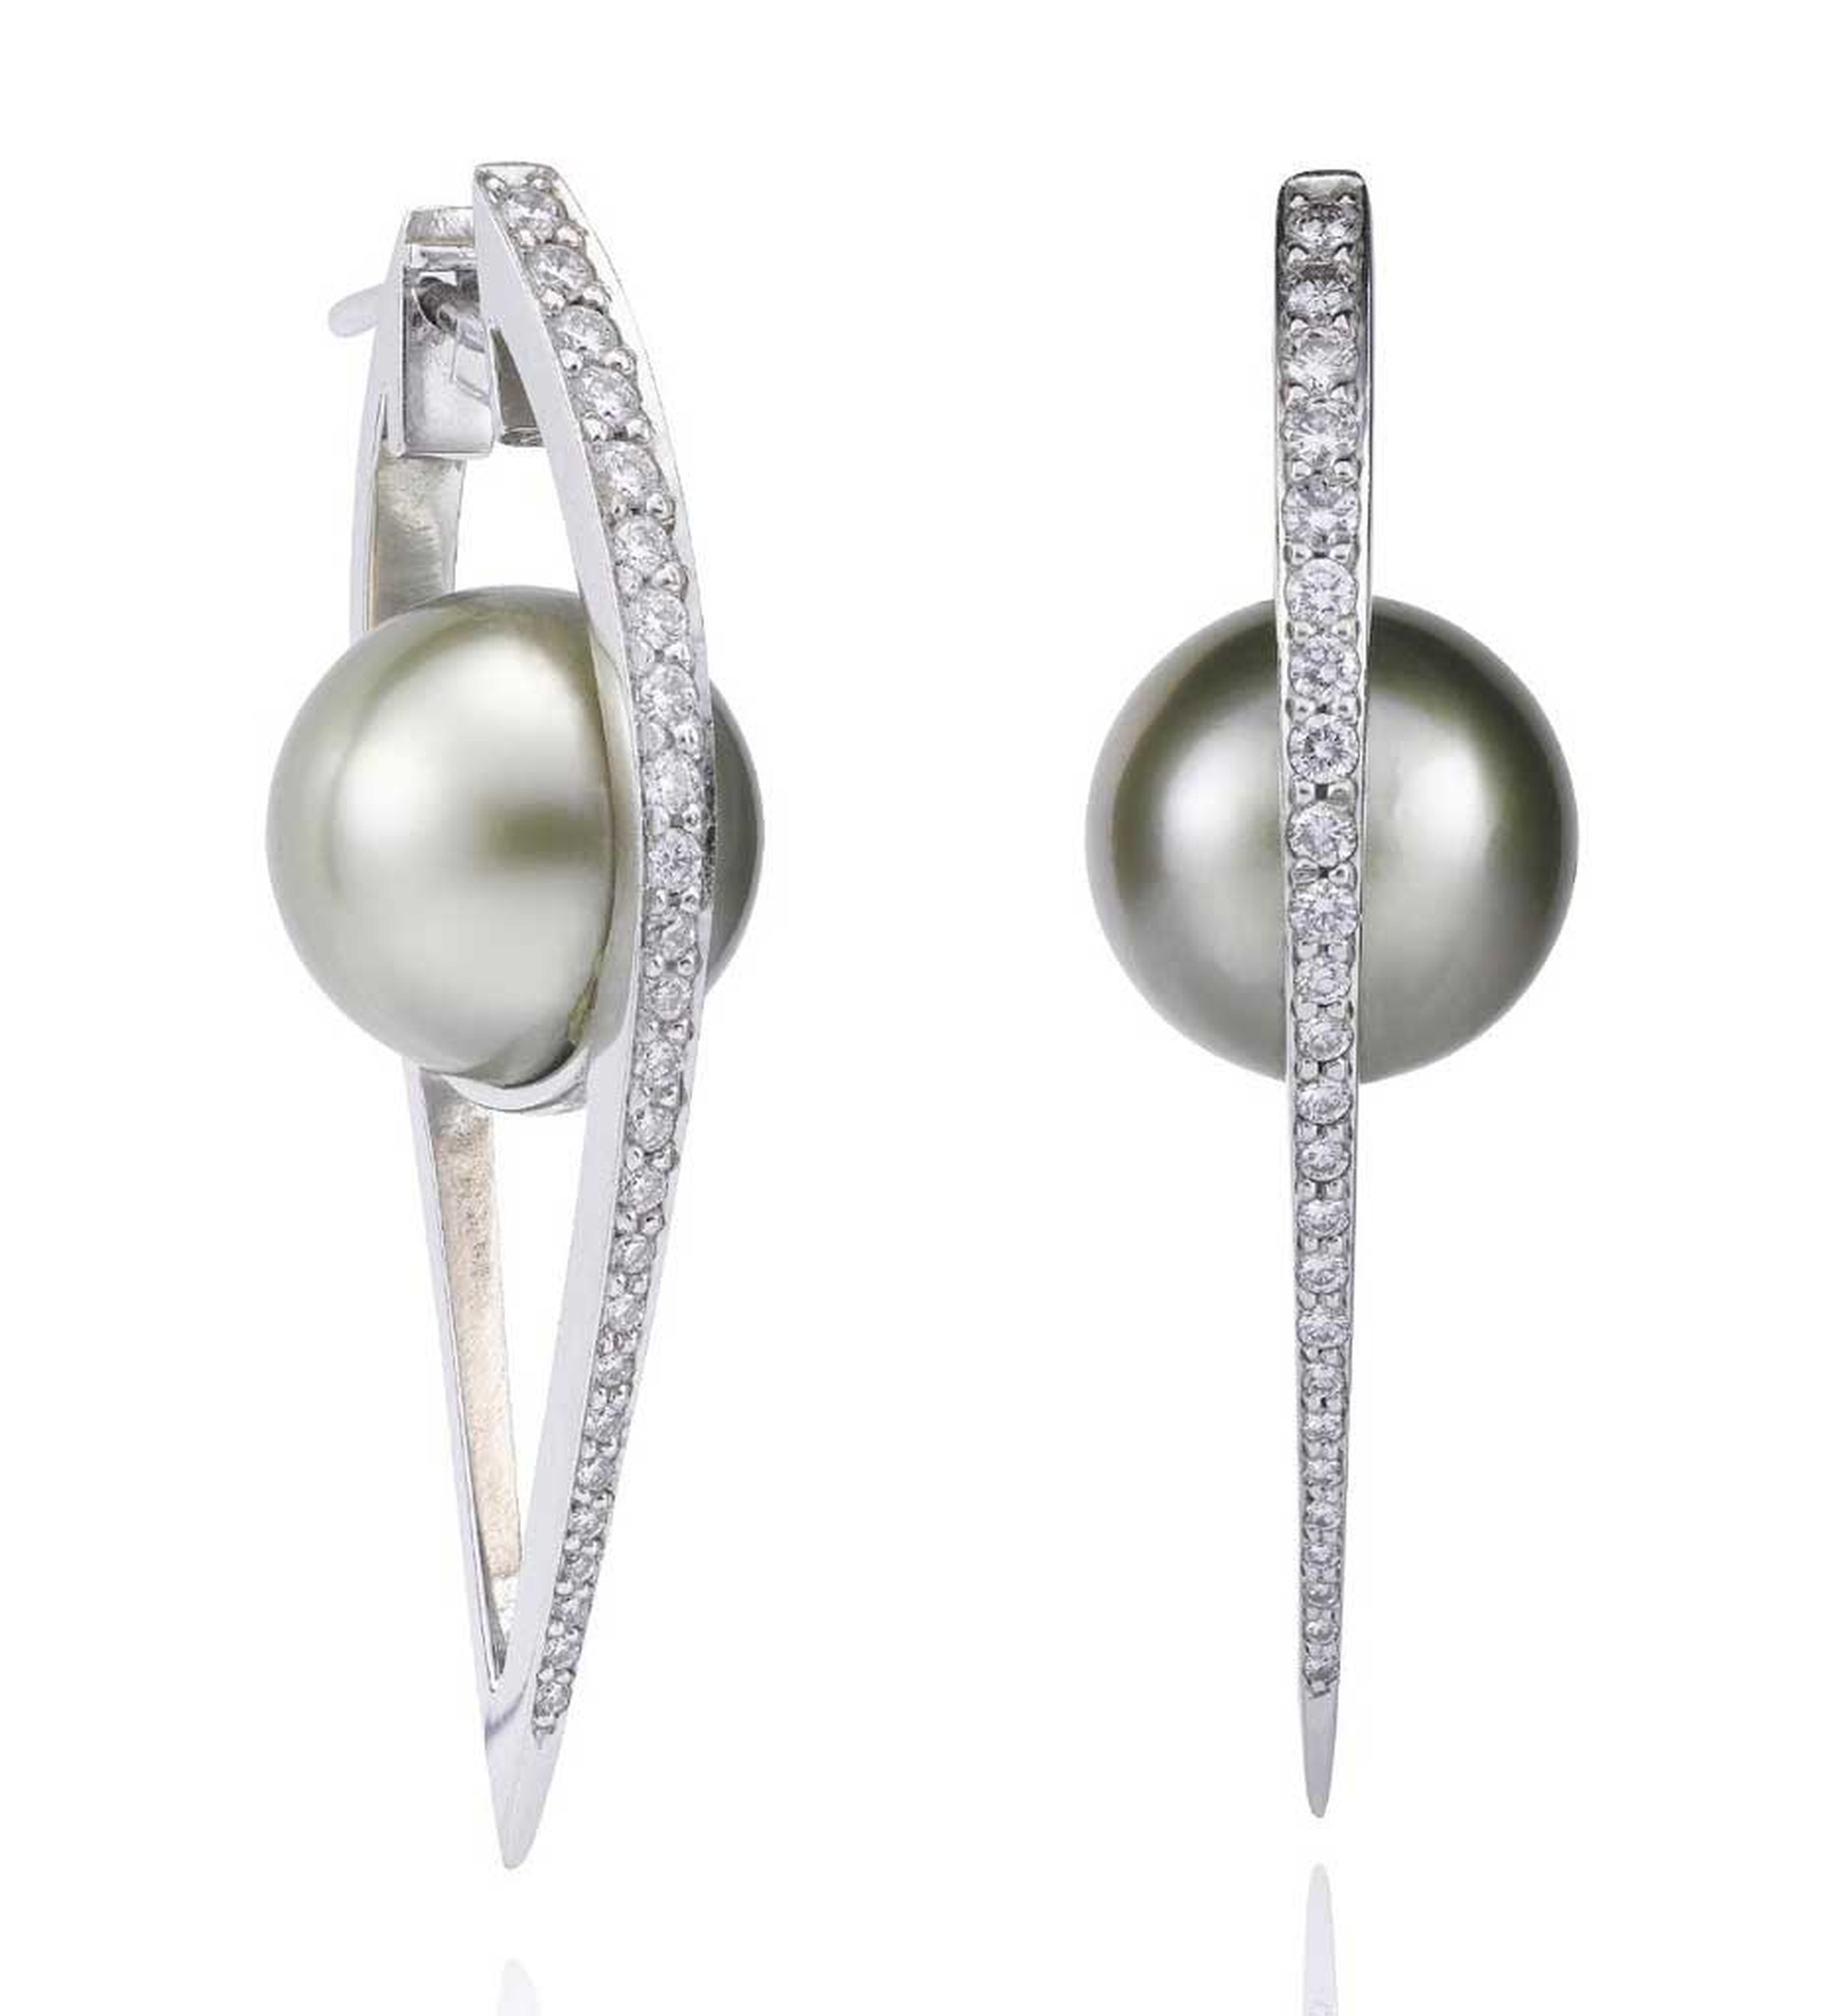 Cutting Edge Pearl Earrings from Boodles featuring a cultured Tahitian pearl, set with round brilliant-cut diamonds, in white gold.